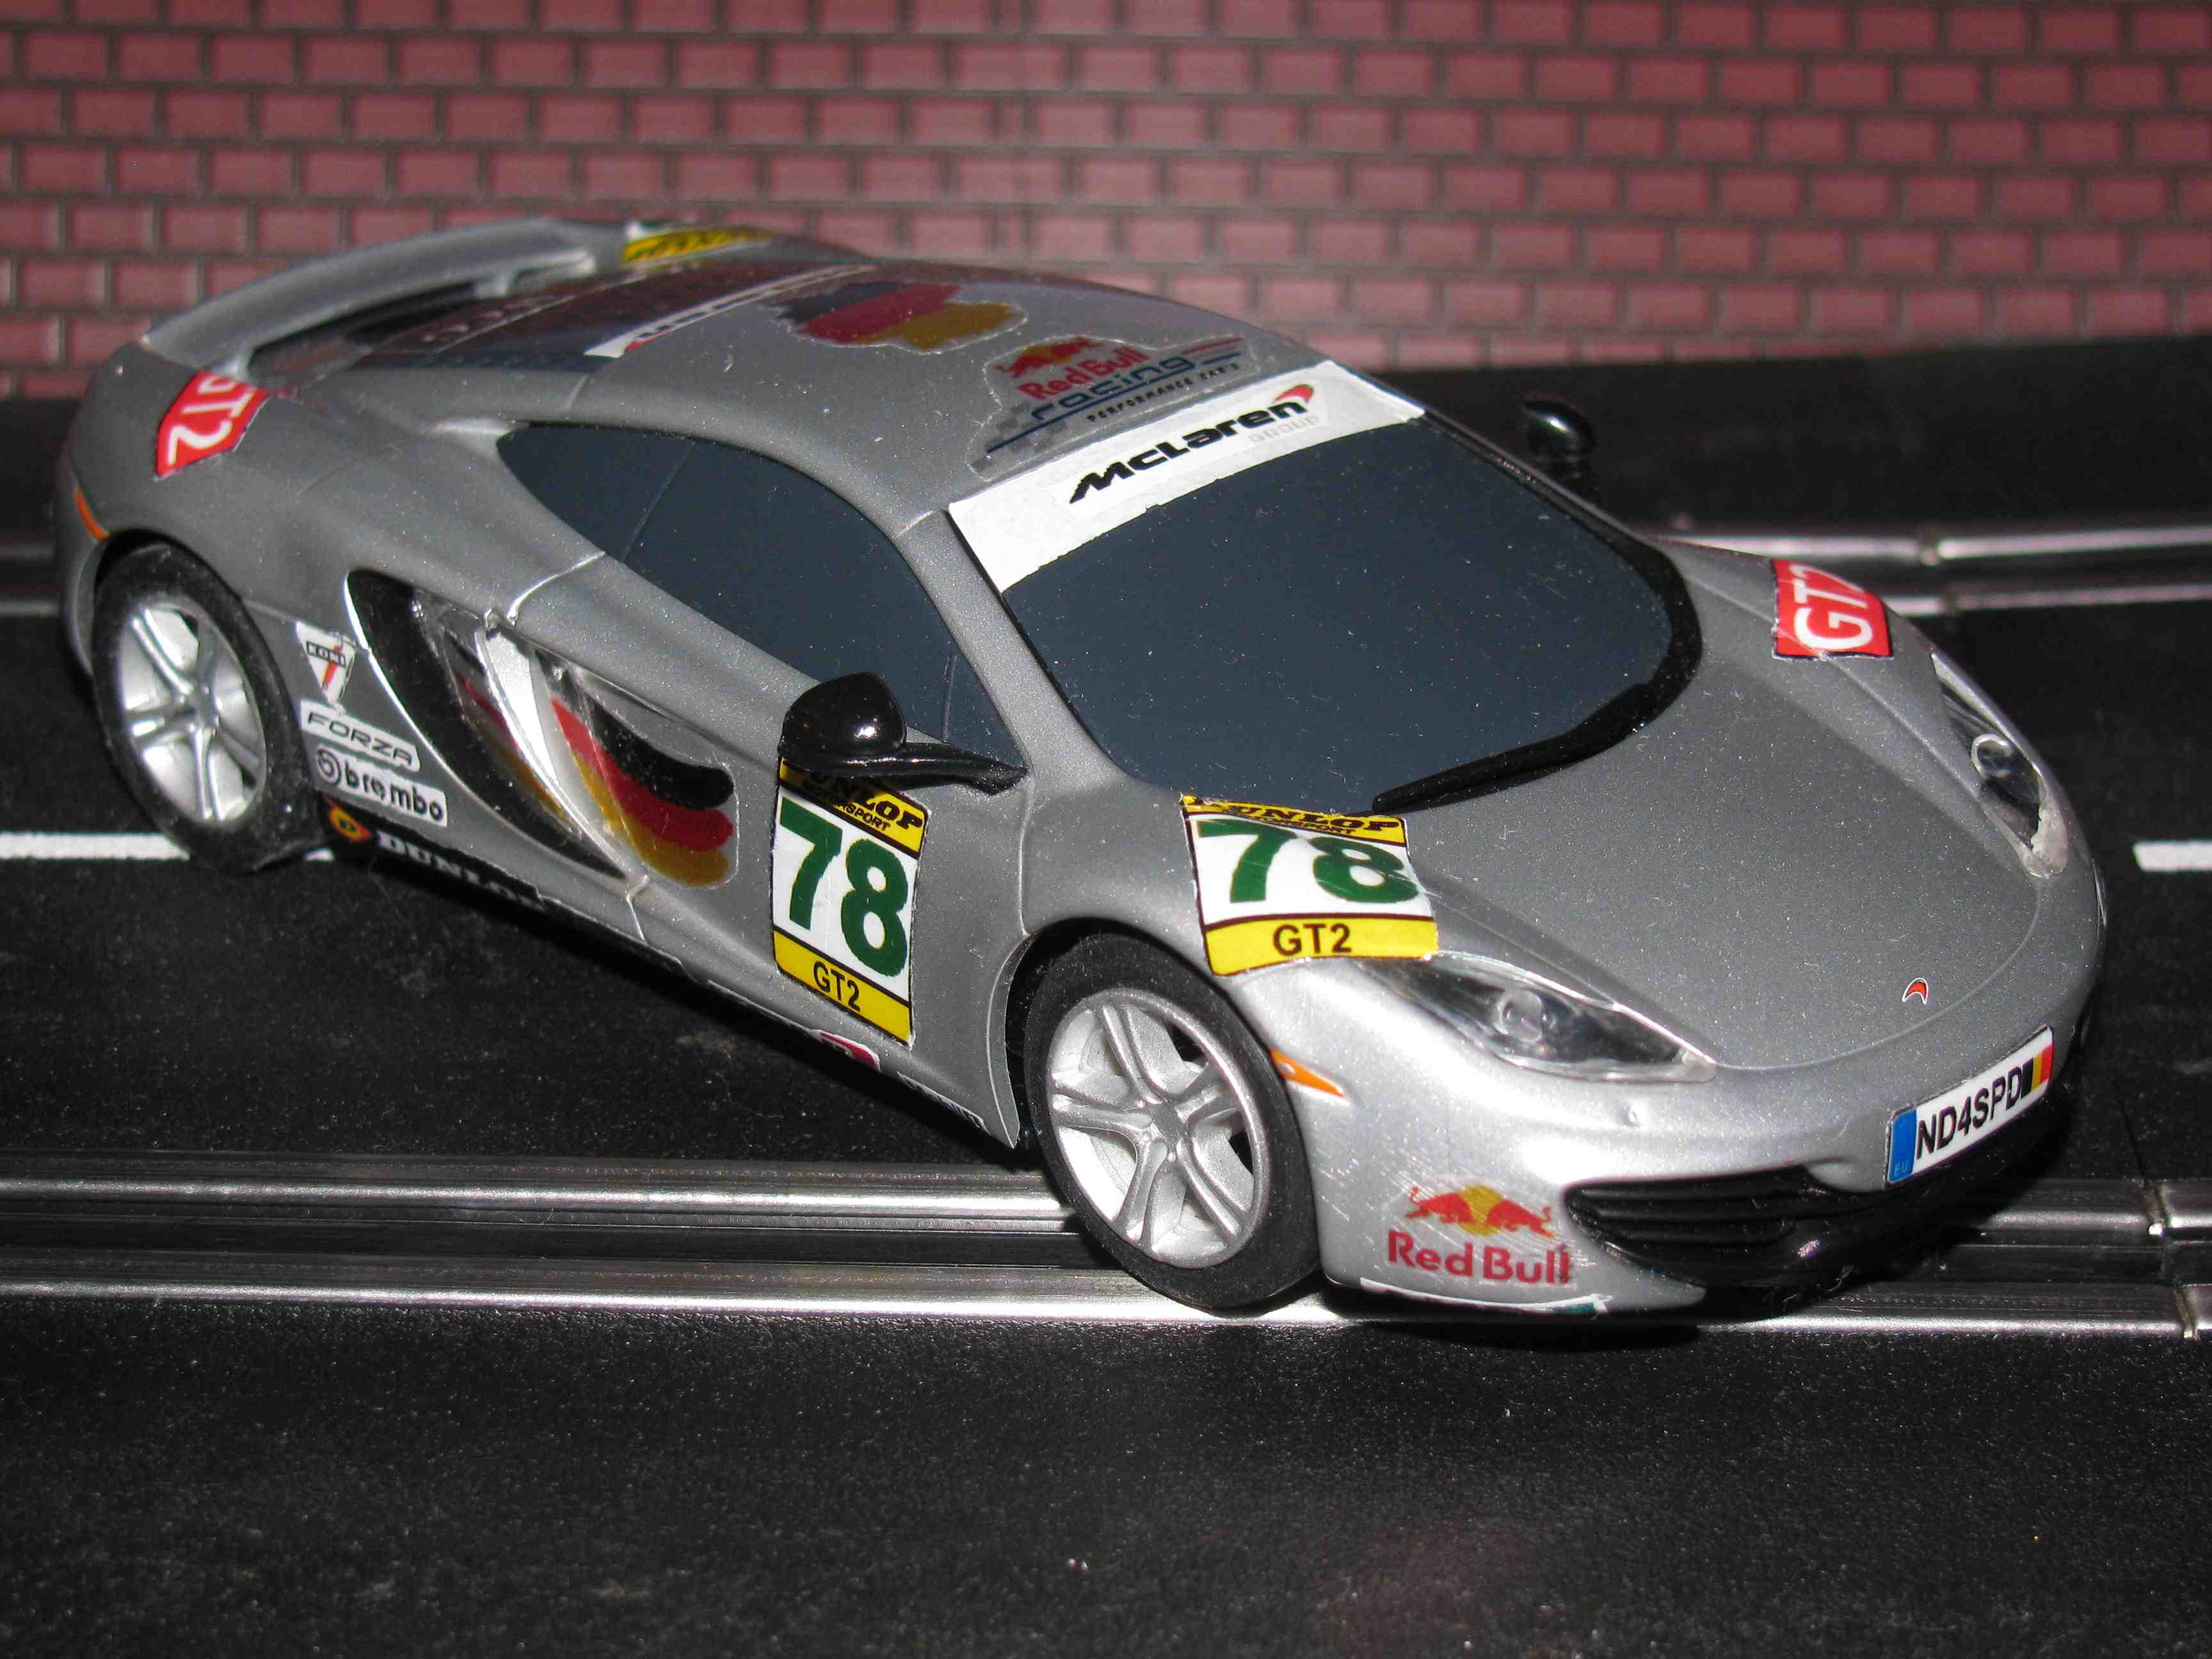 * Sold * SCALEXTRIC Slot Car 1:32 MCLAREN MP4-12C Artic Silver DIGITAL Plug Ready - In Display Case